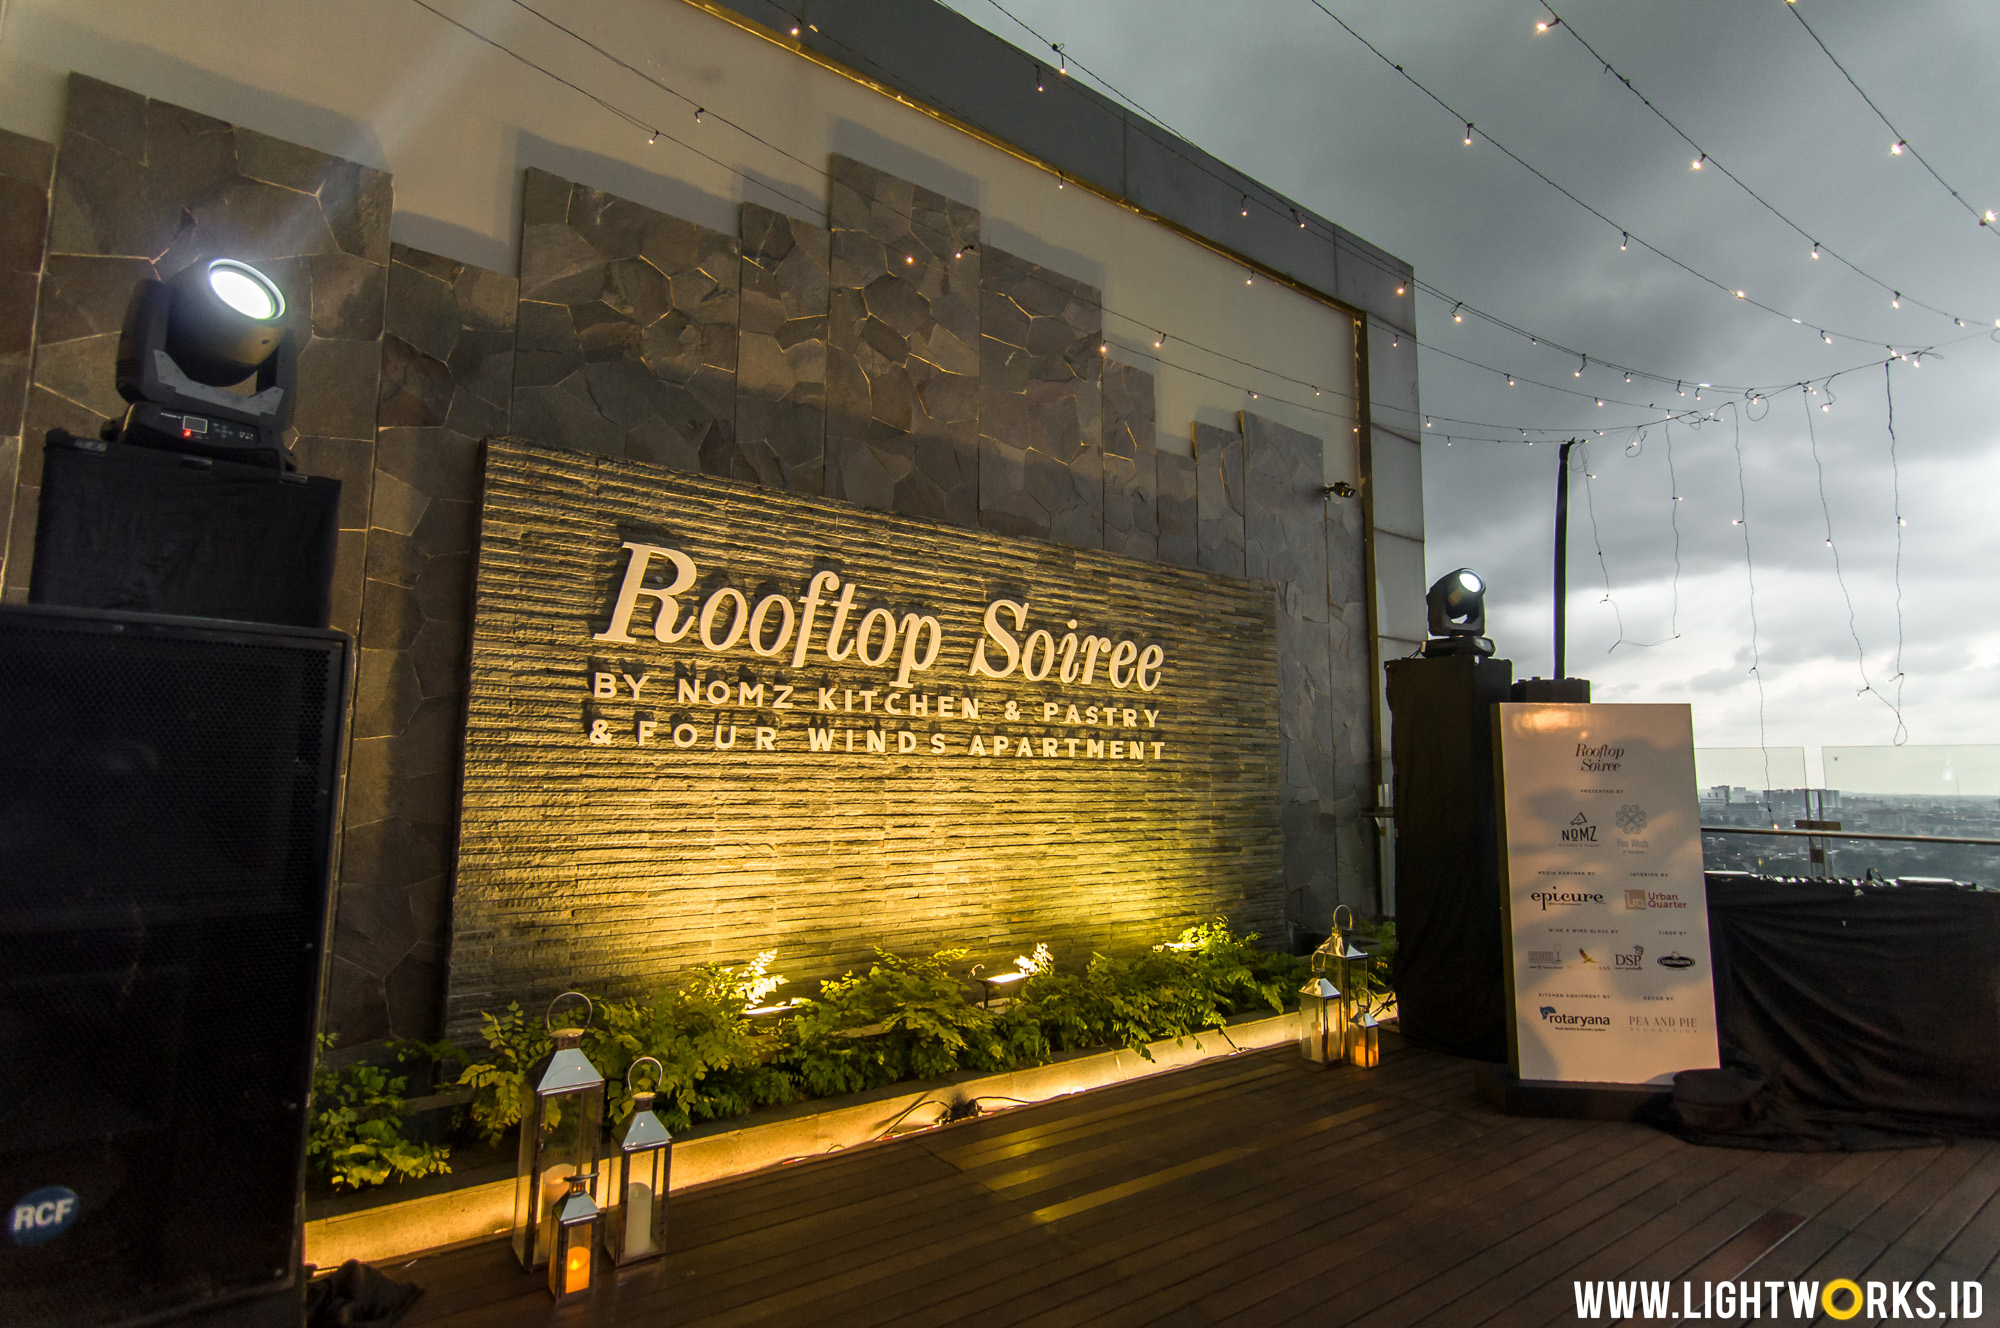 Rooftop Soiree | Venue at Four Winds Apartment | Decoration by Pea and Pie | Partner up with Nomzjakarta | MC by Dave Hendrik | Interior by Urban Quarter Indonesia | Media partner by Epicure Magezine Asia | Wolfblass wine by DSP Wine & Spirits | Glassess by Riedel Indonesia | Kitchen Equipment by Rotaryana Prima | Cider by Strongbow Indonesia | Supported by RINKU | Lighting by Lightworks